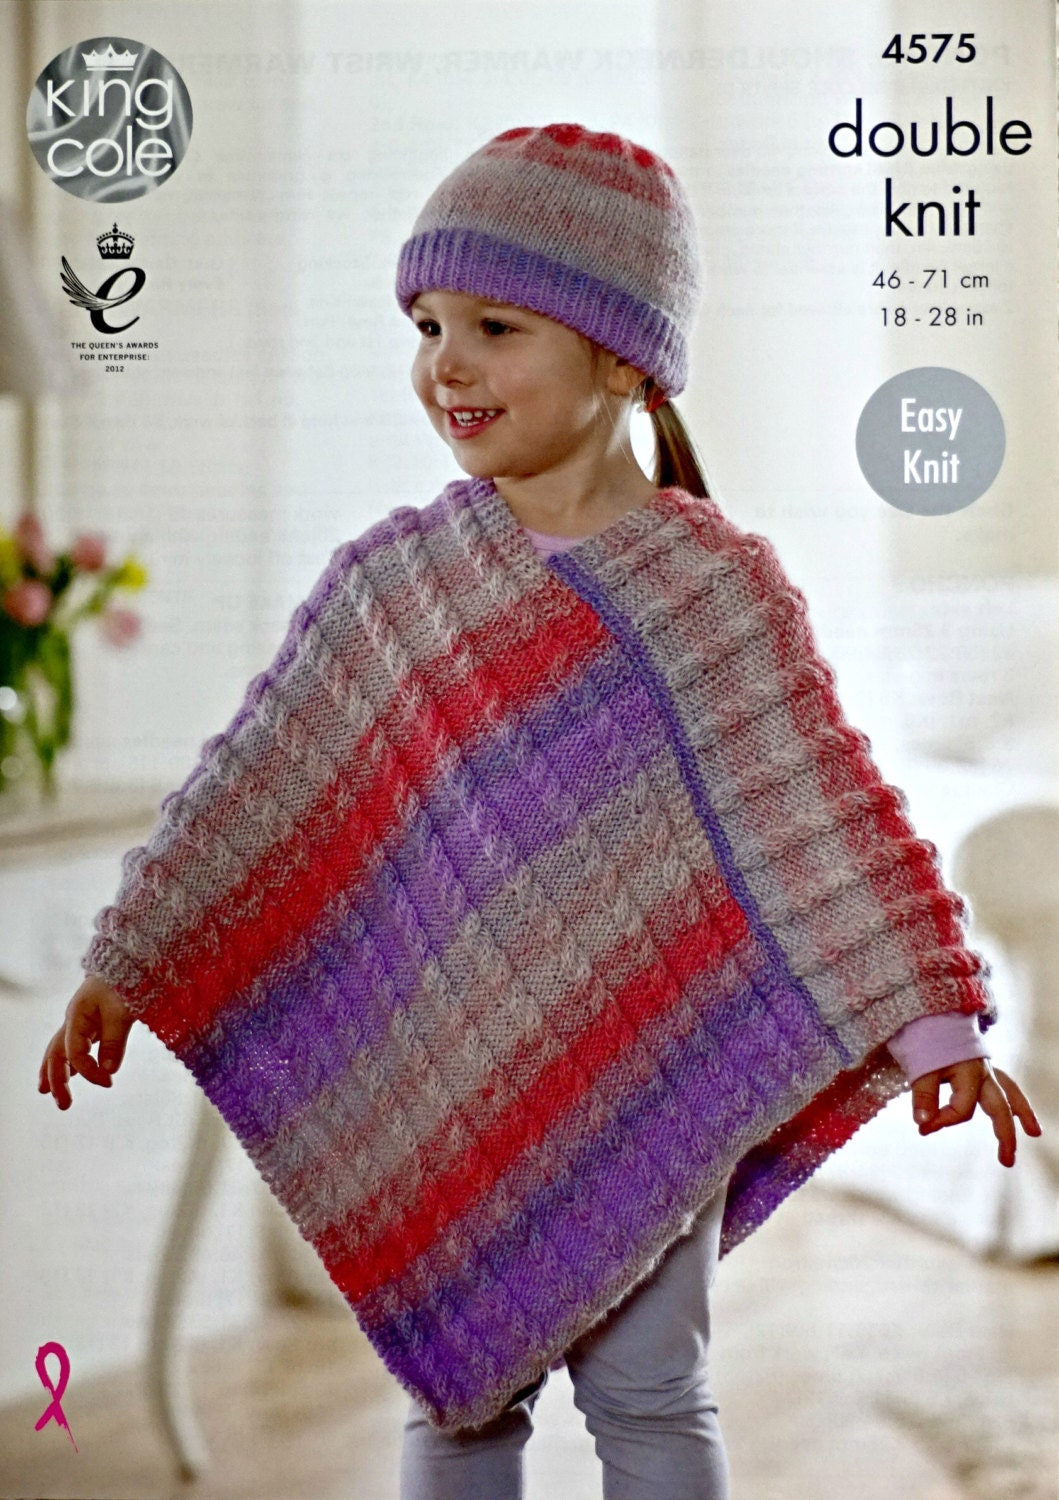 Girls knitting pattern k4575 girls easy knit cable poncho and hat girls knitting pattern k4575 girls easy knit cable poncho and hat knitting pattern sprite dk light worsted king cole bankloansurffo Gallery